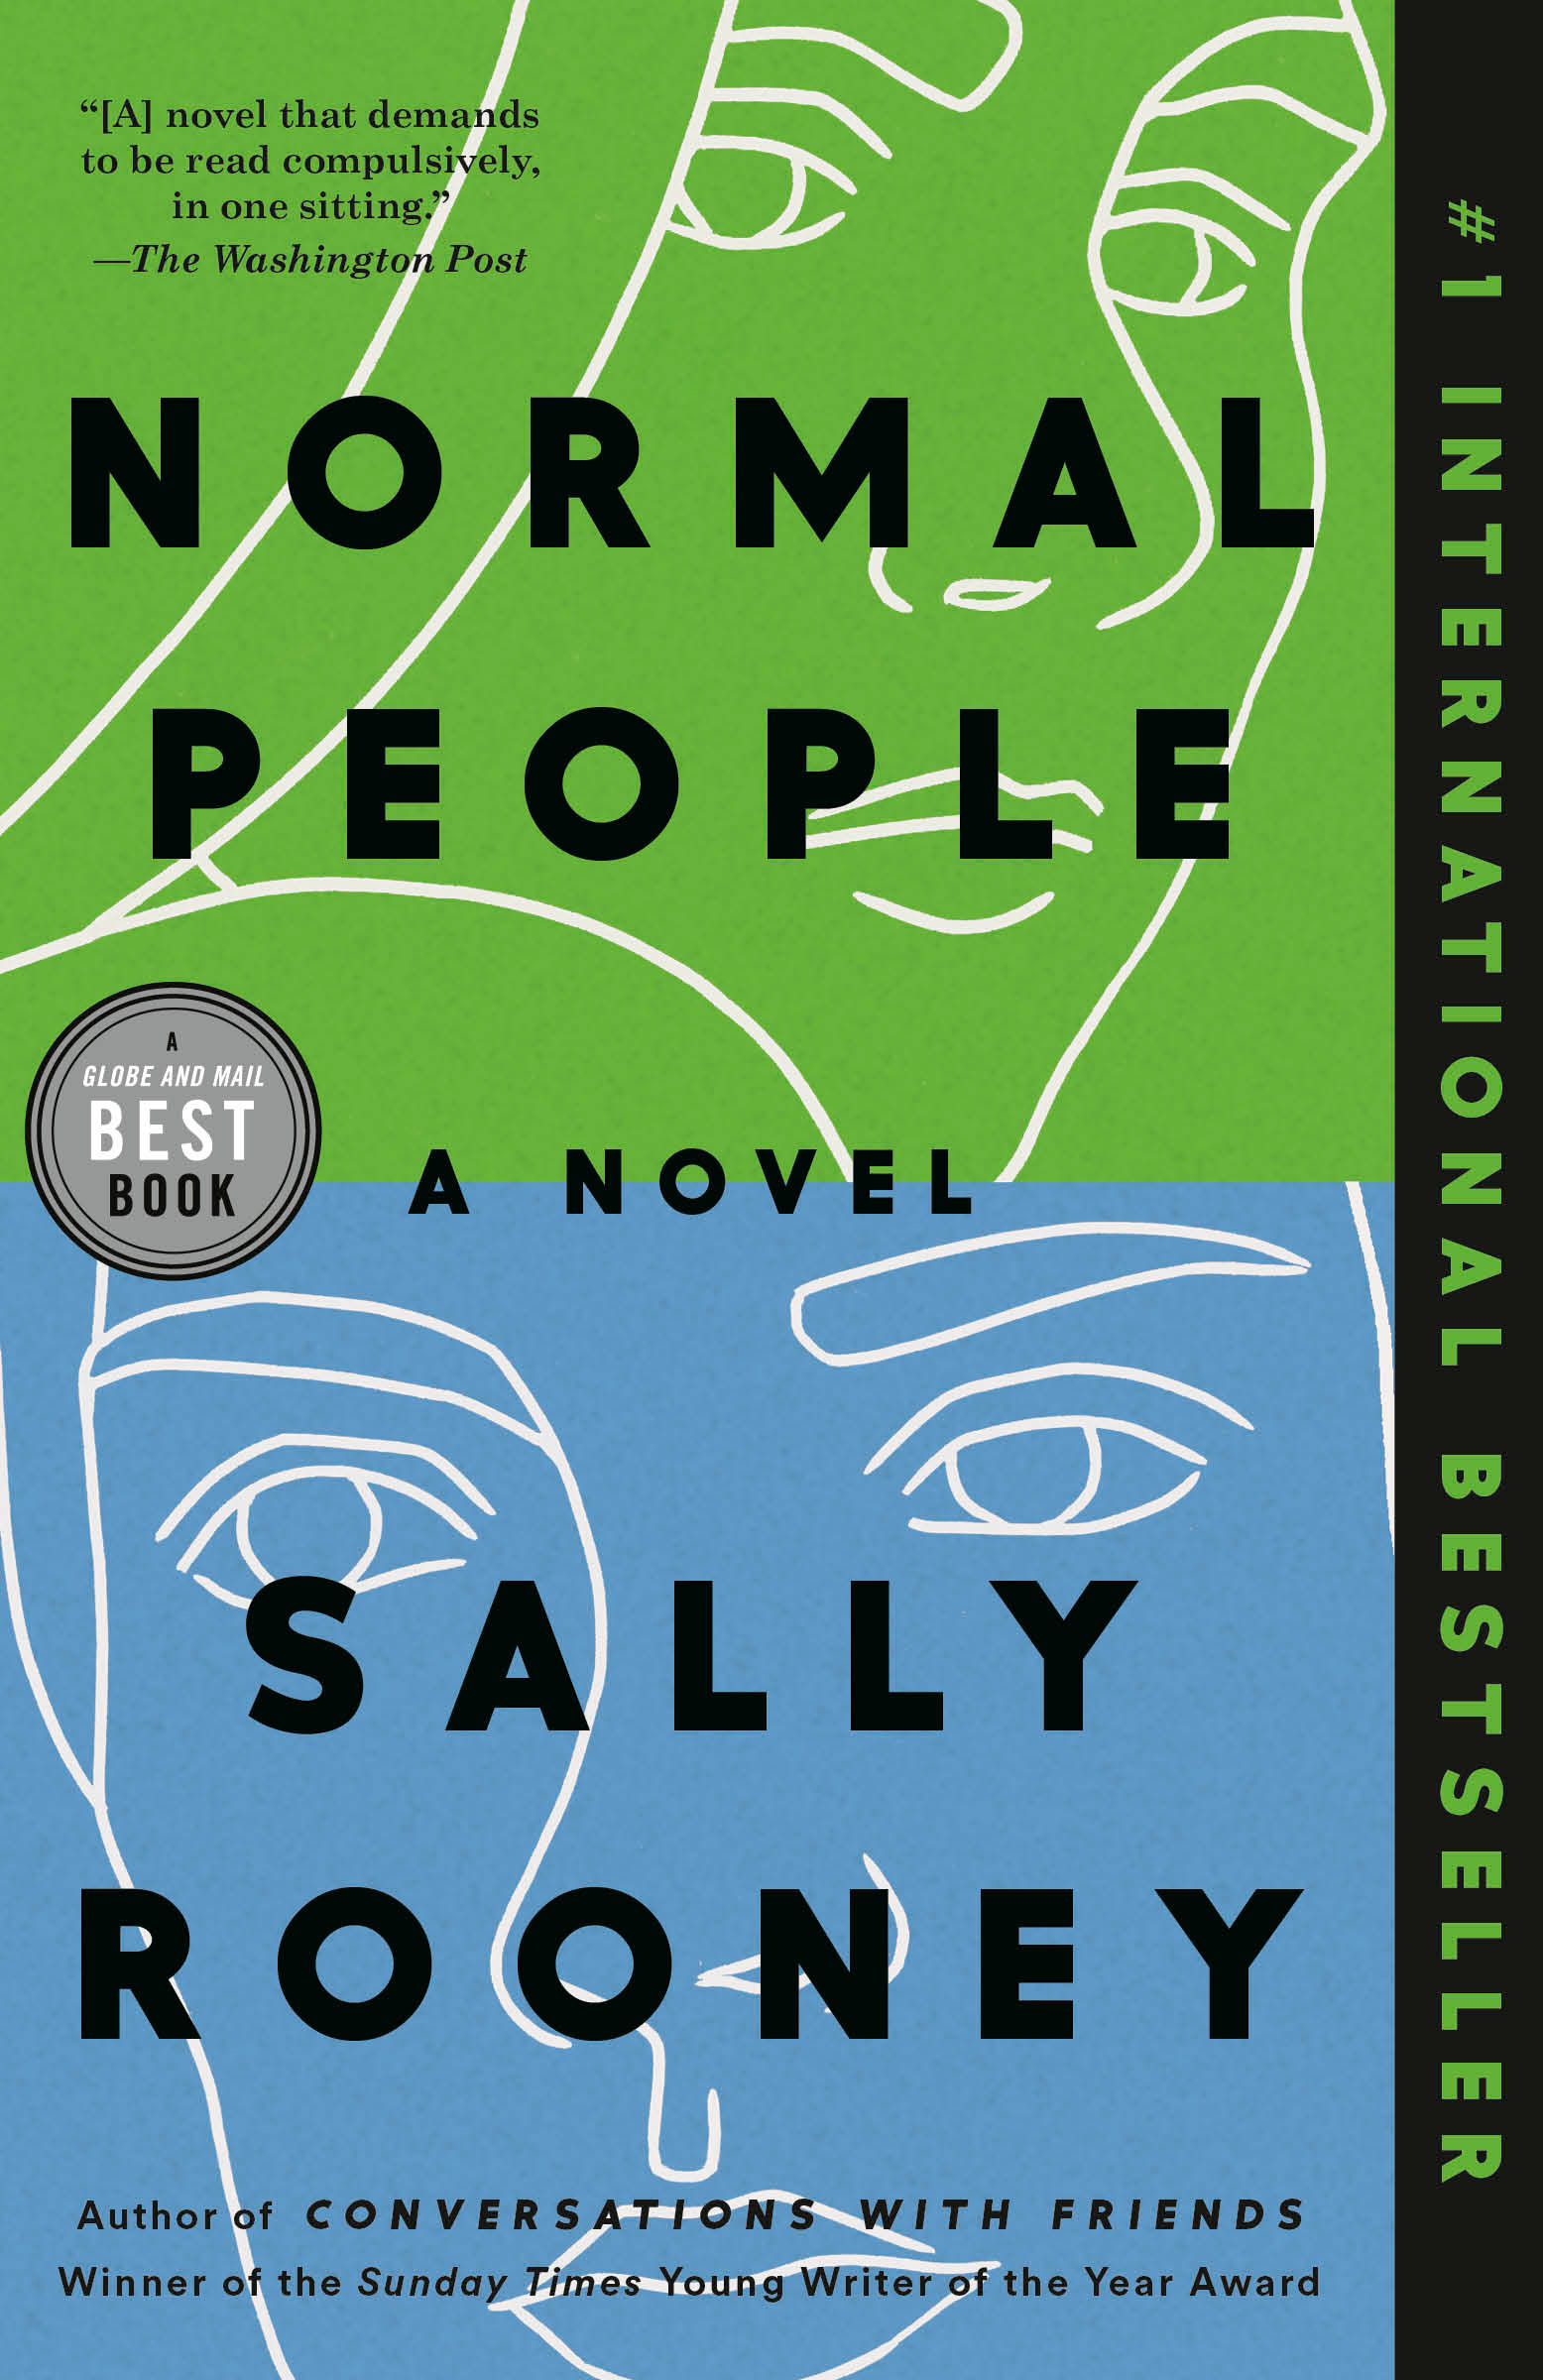 Normal People : A Novel | Novel